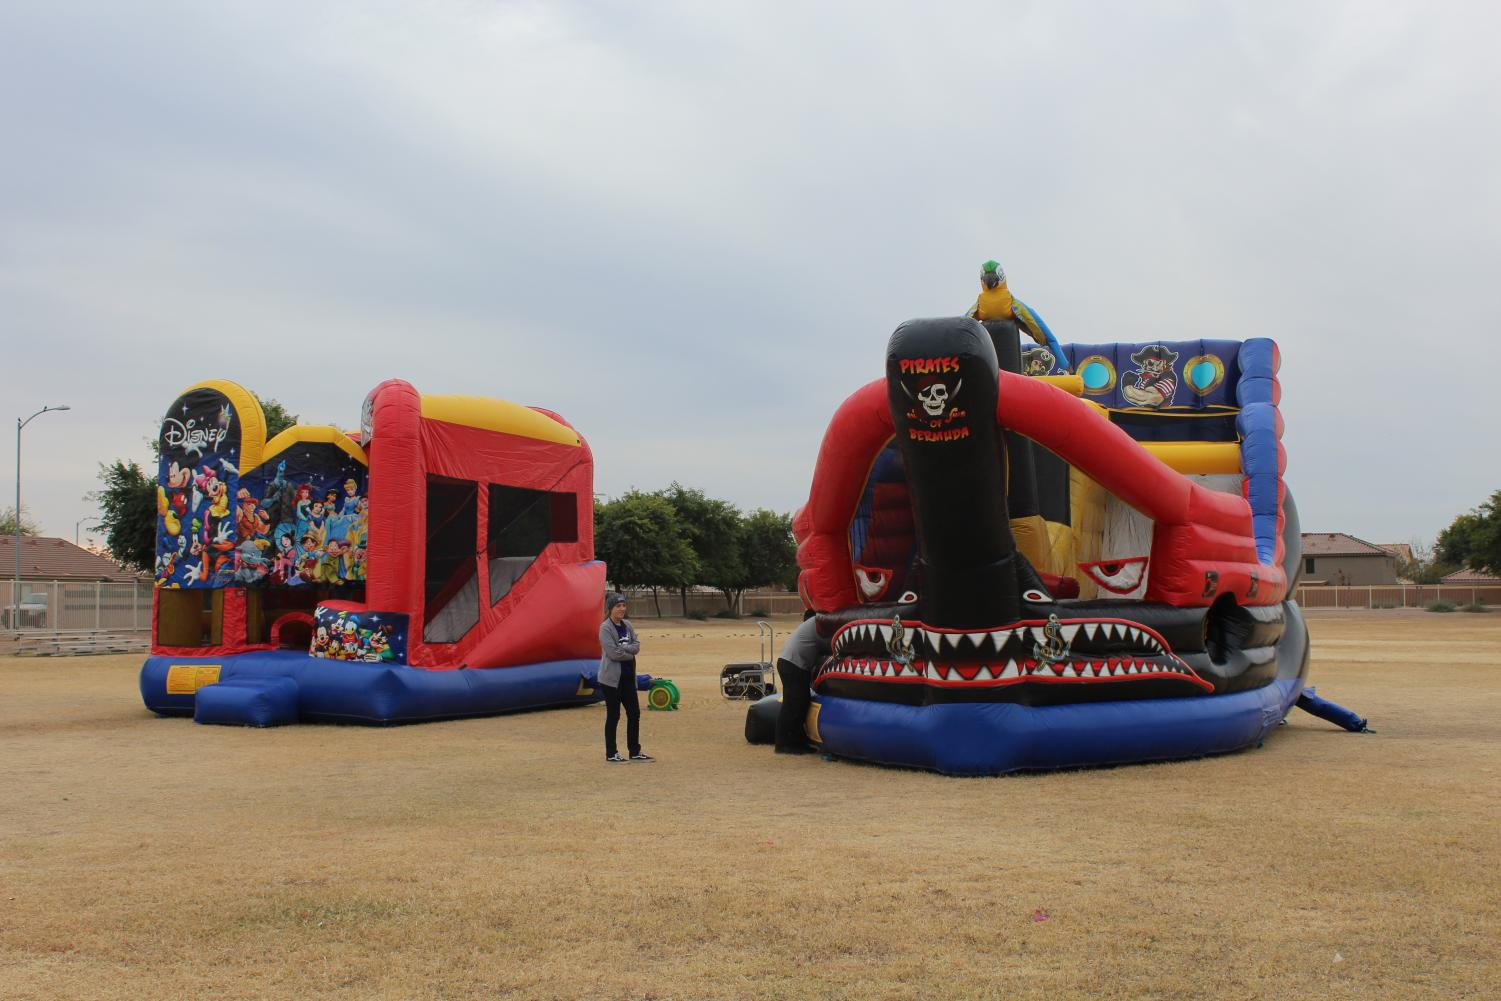 Two large bounce houses were there for kids to jump on.